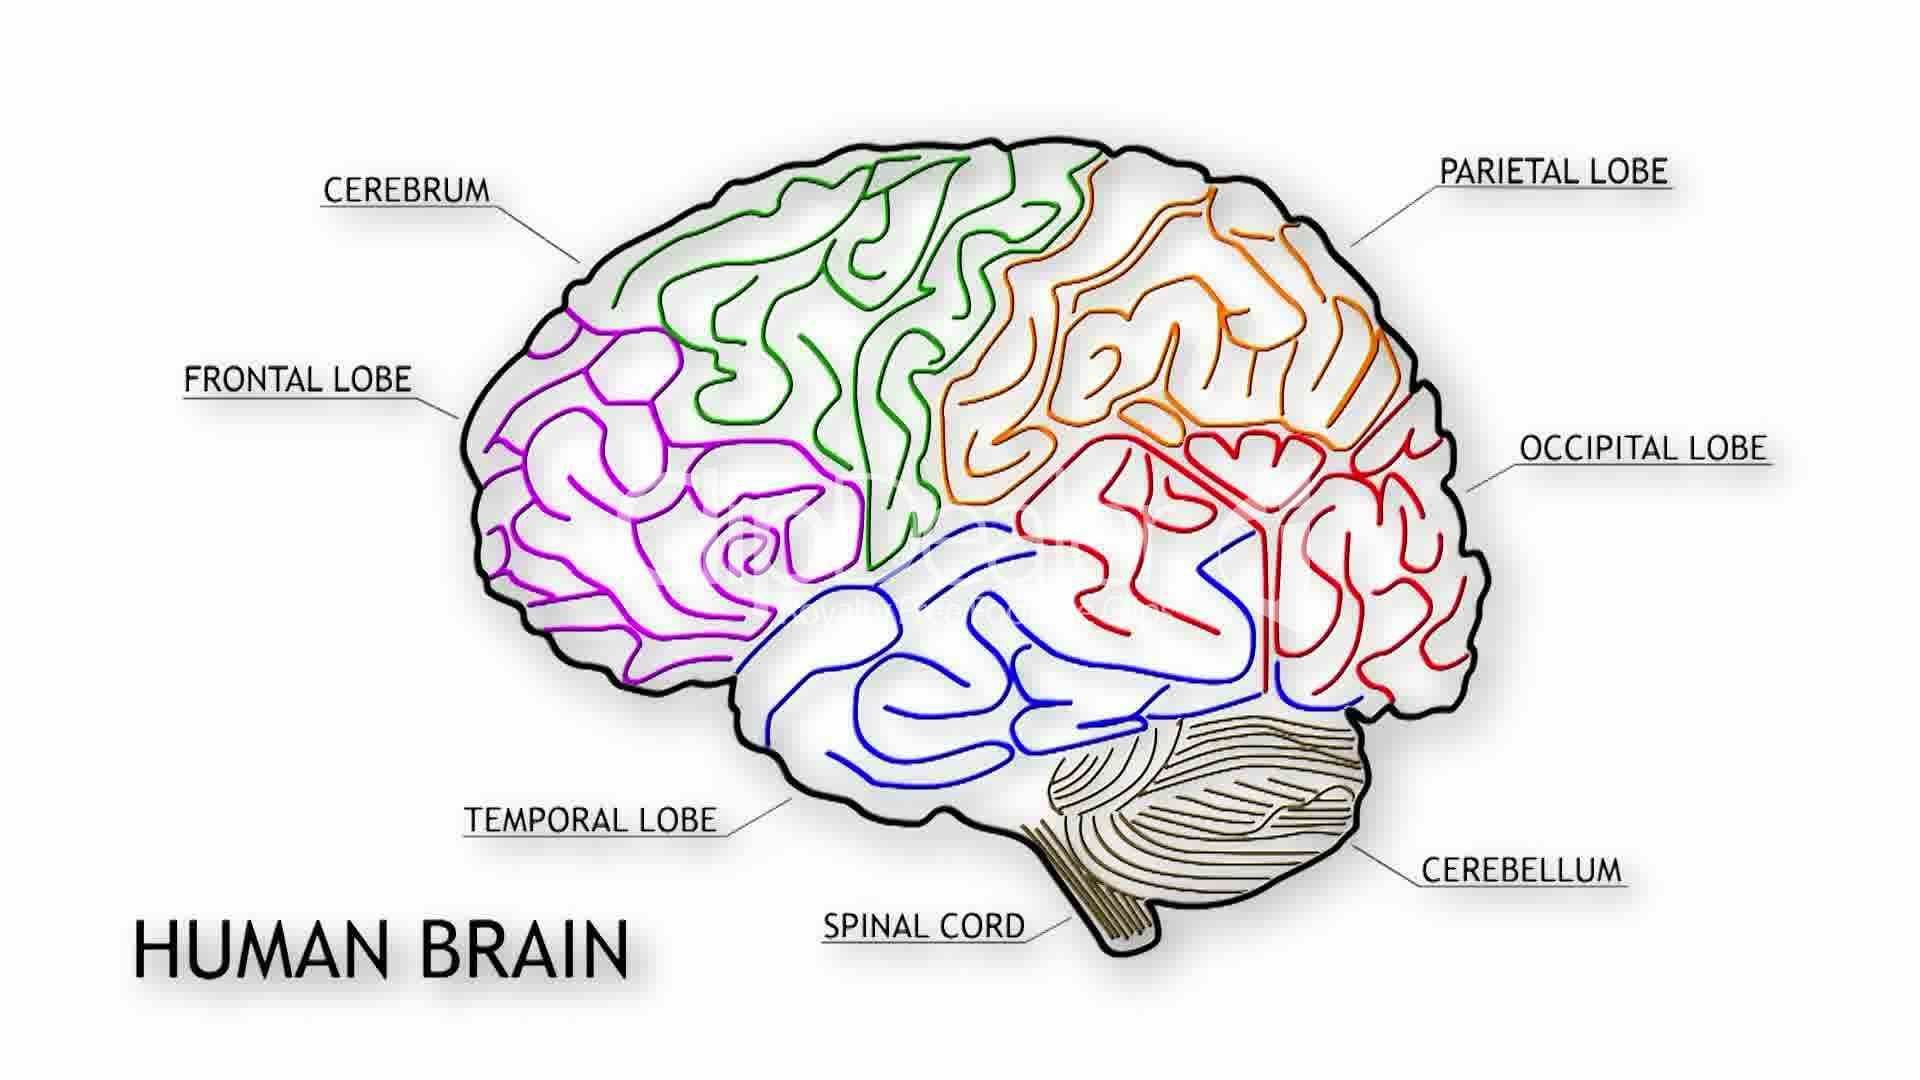 Brain And Spinal Cord Diagram Surround Sound Wiring Logitech Simple Showing The Lobes Of Human